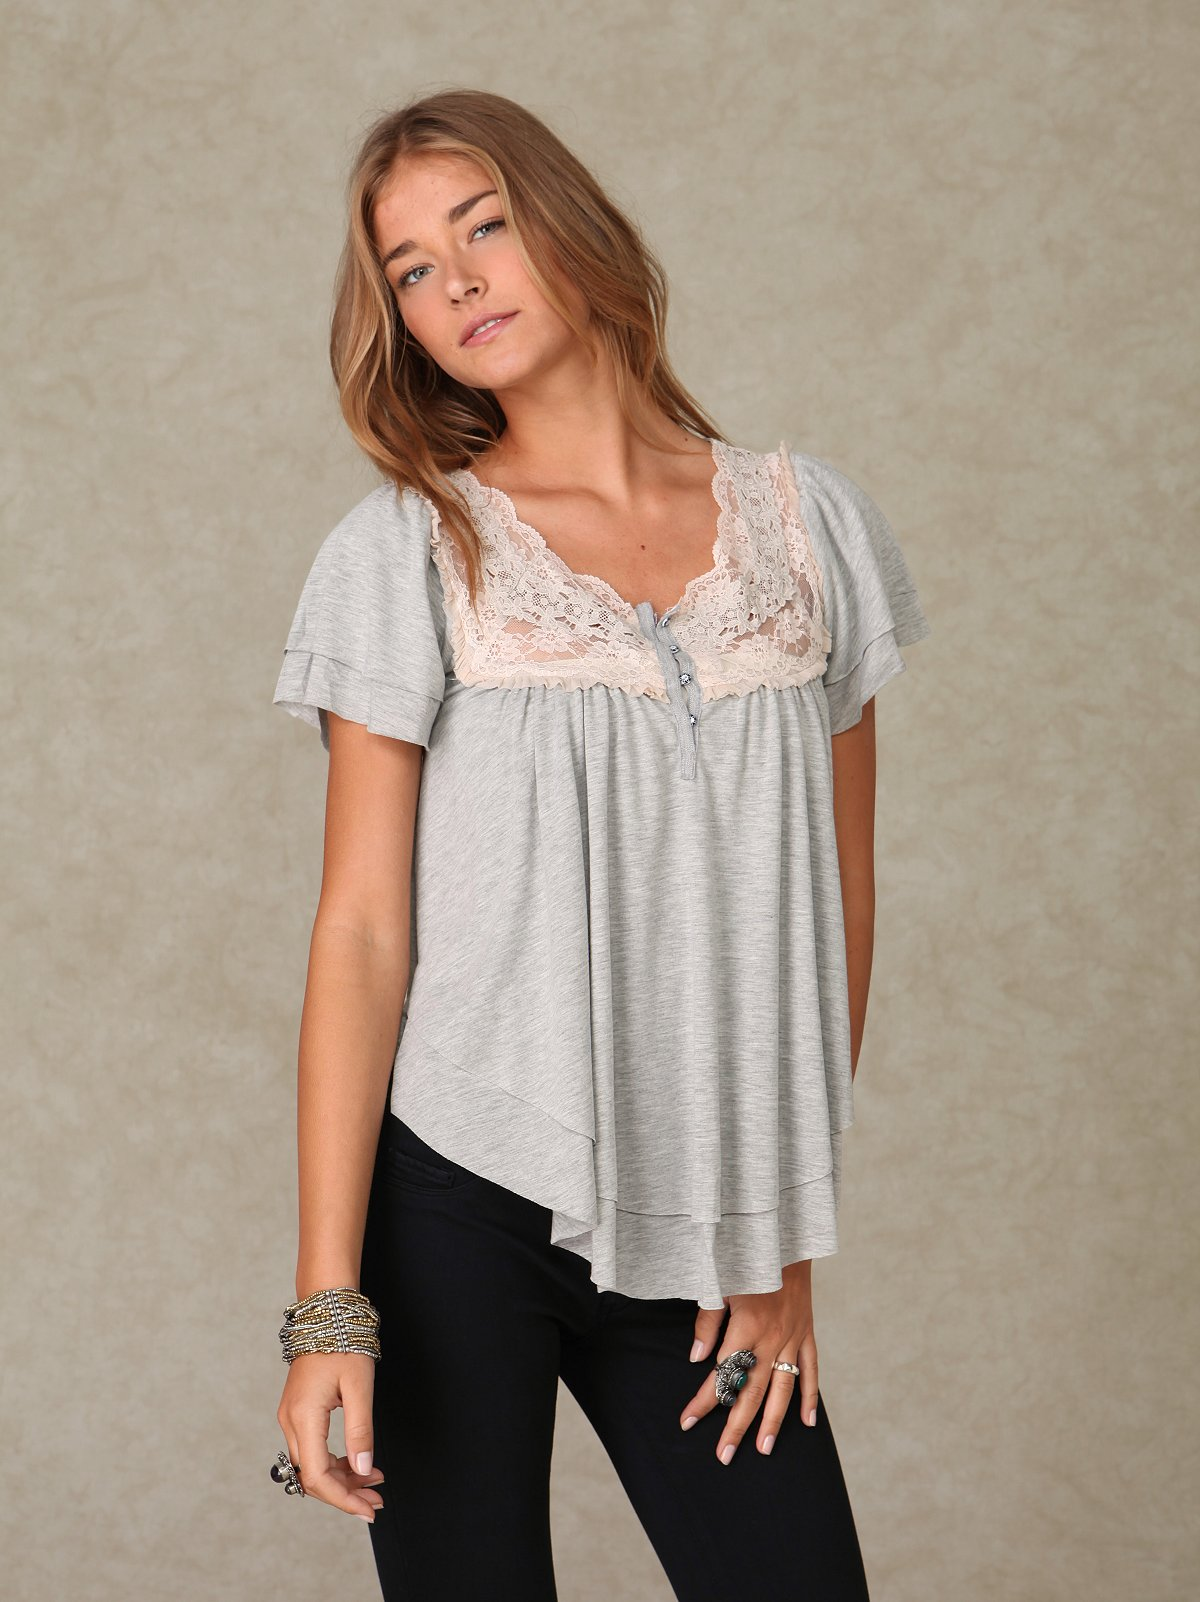 Shortsleeve Boho Lace Neck Blouse